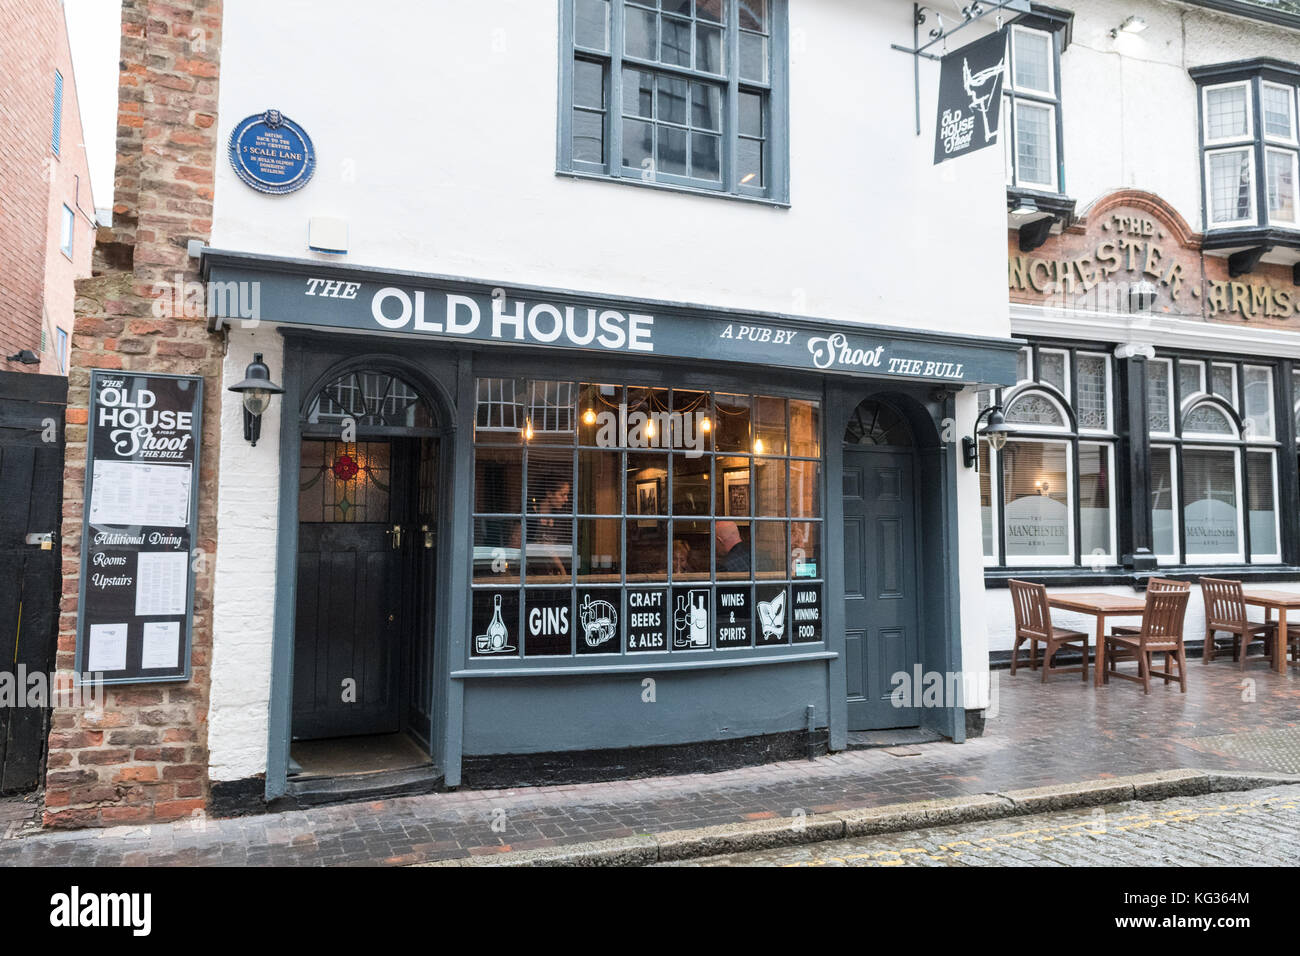 The Old House a pub and restaurant by Shoot The Bull, Hull, England, UK - Stock Image